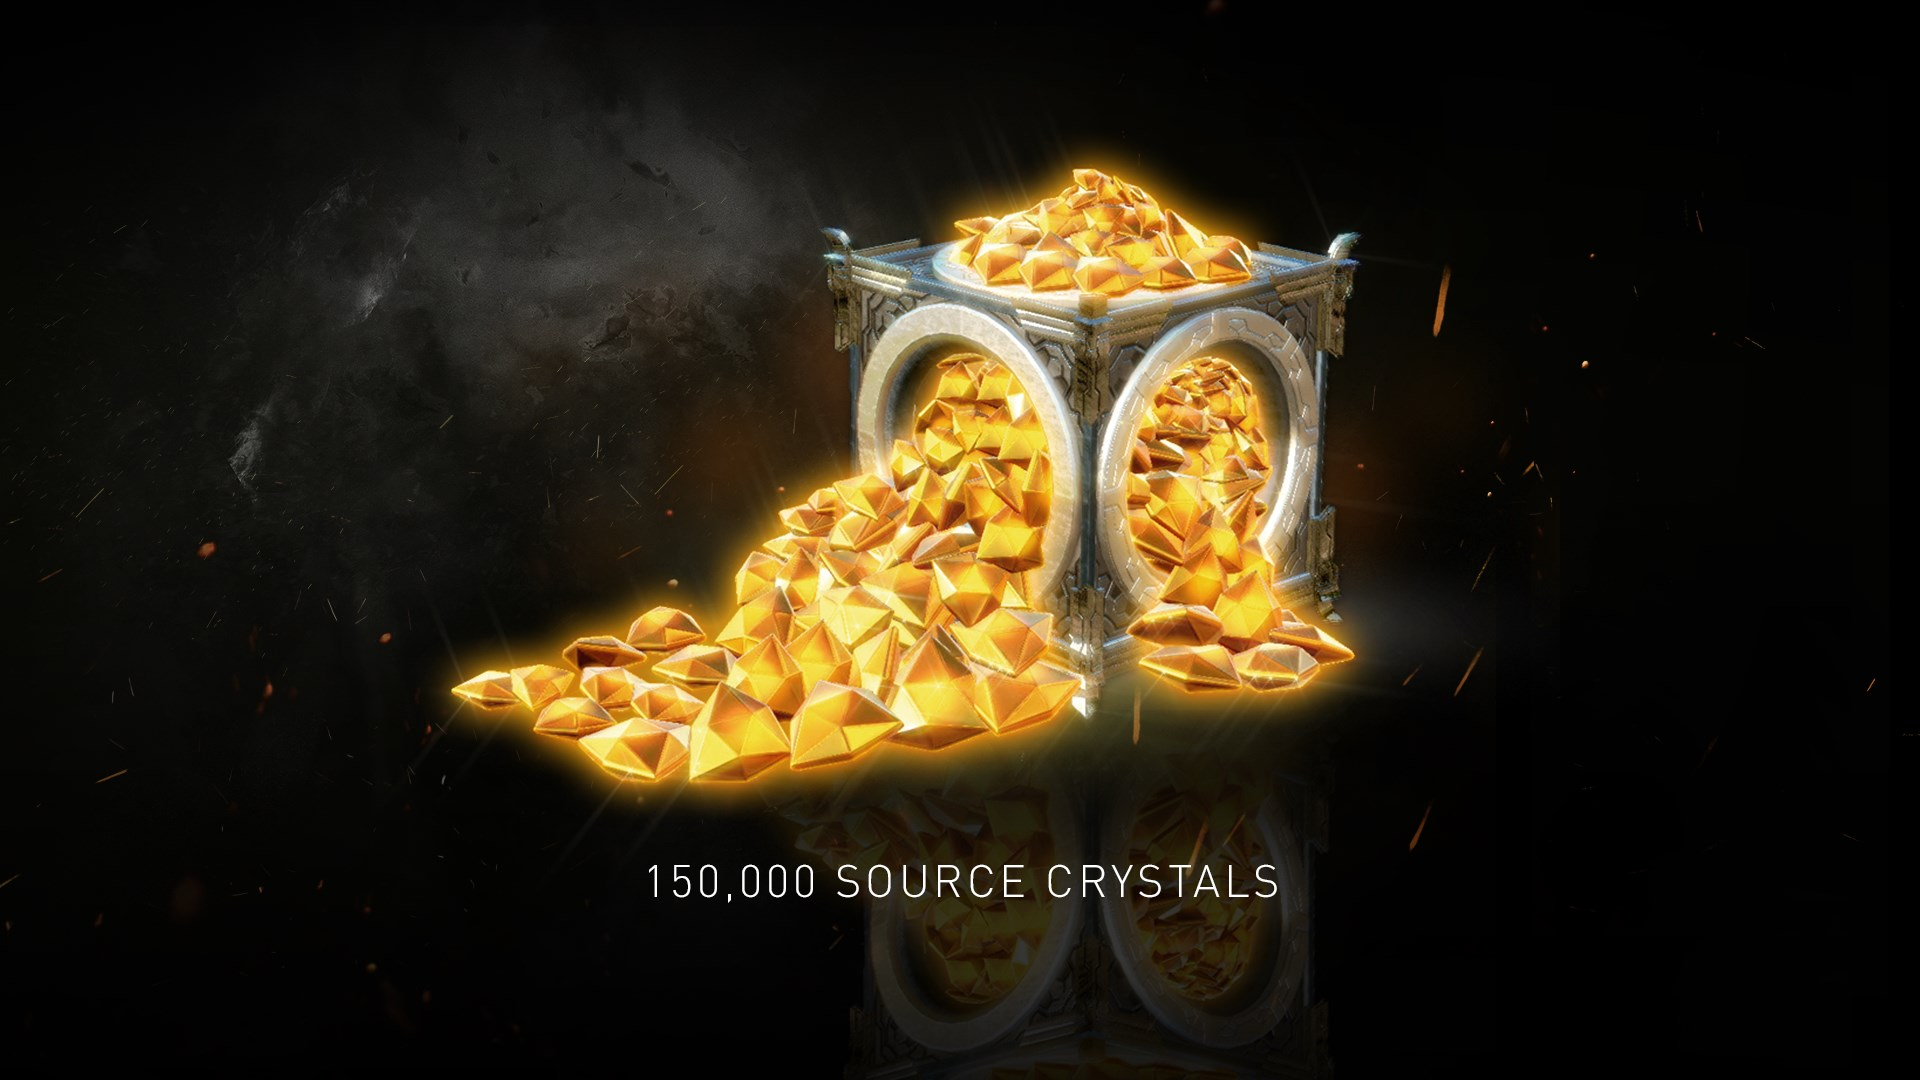 Injustice™ 2 - 150,000 Source Crystals